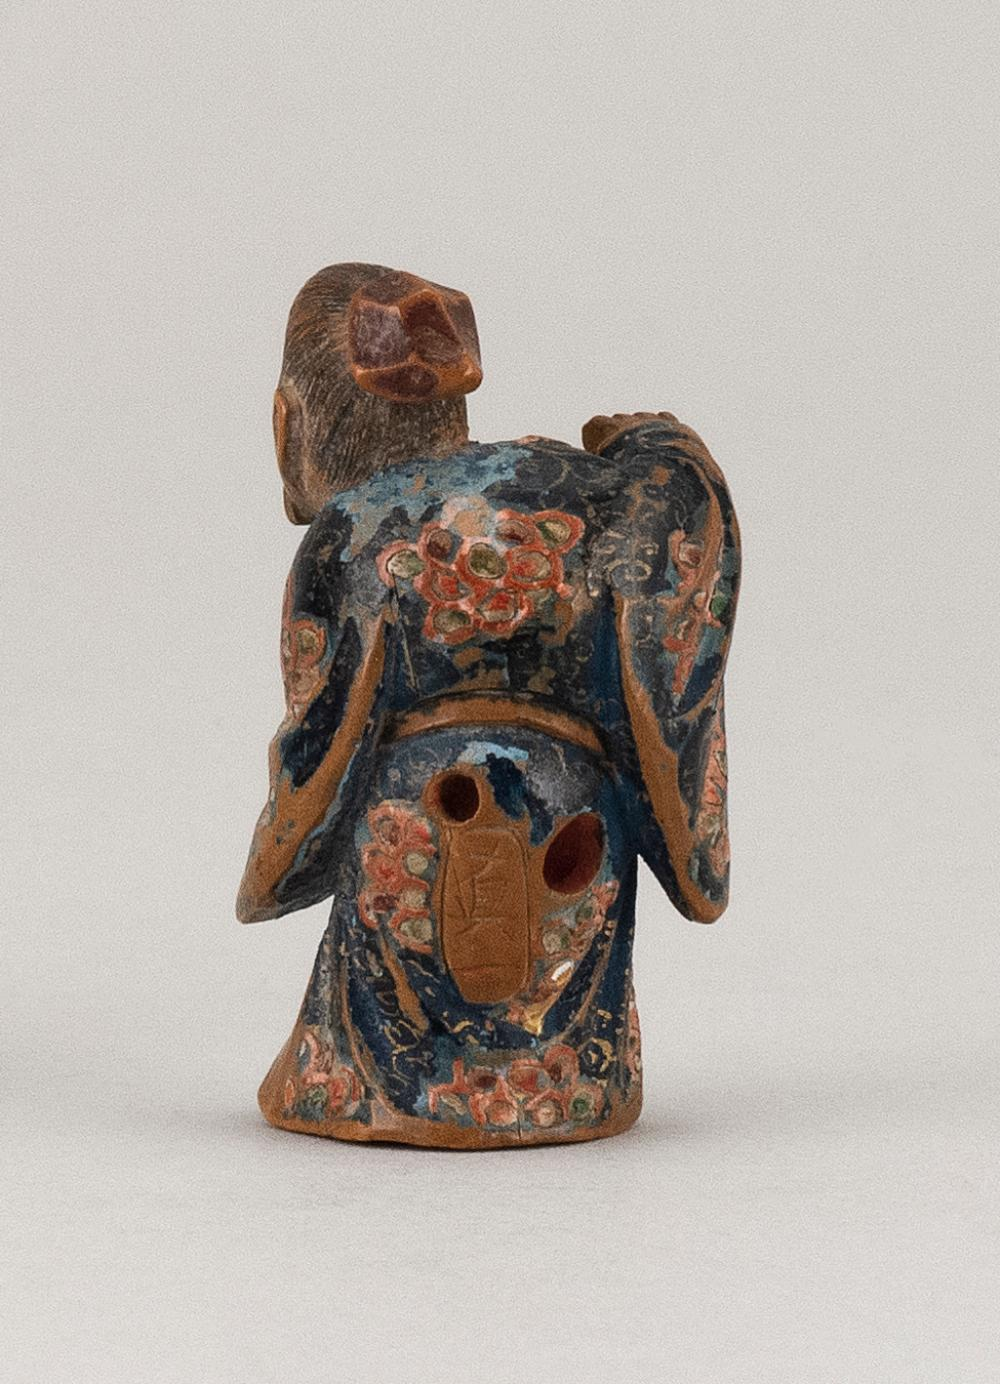 JAPANESE POLYCHROME WOOD NETSUKE By Nagamachi Shuzan. In the form of a scholar playing a flute. Height 1.75